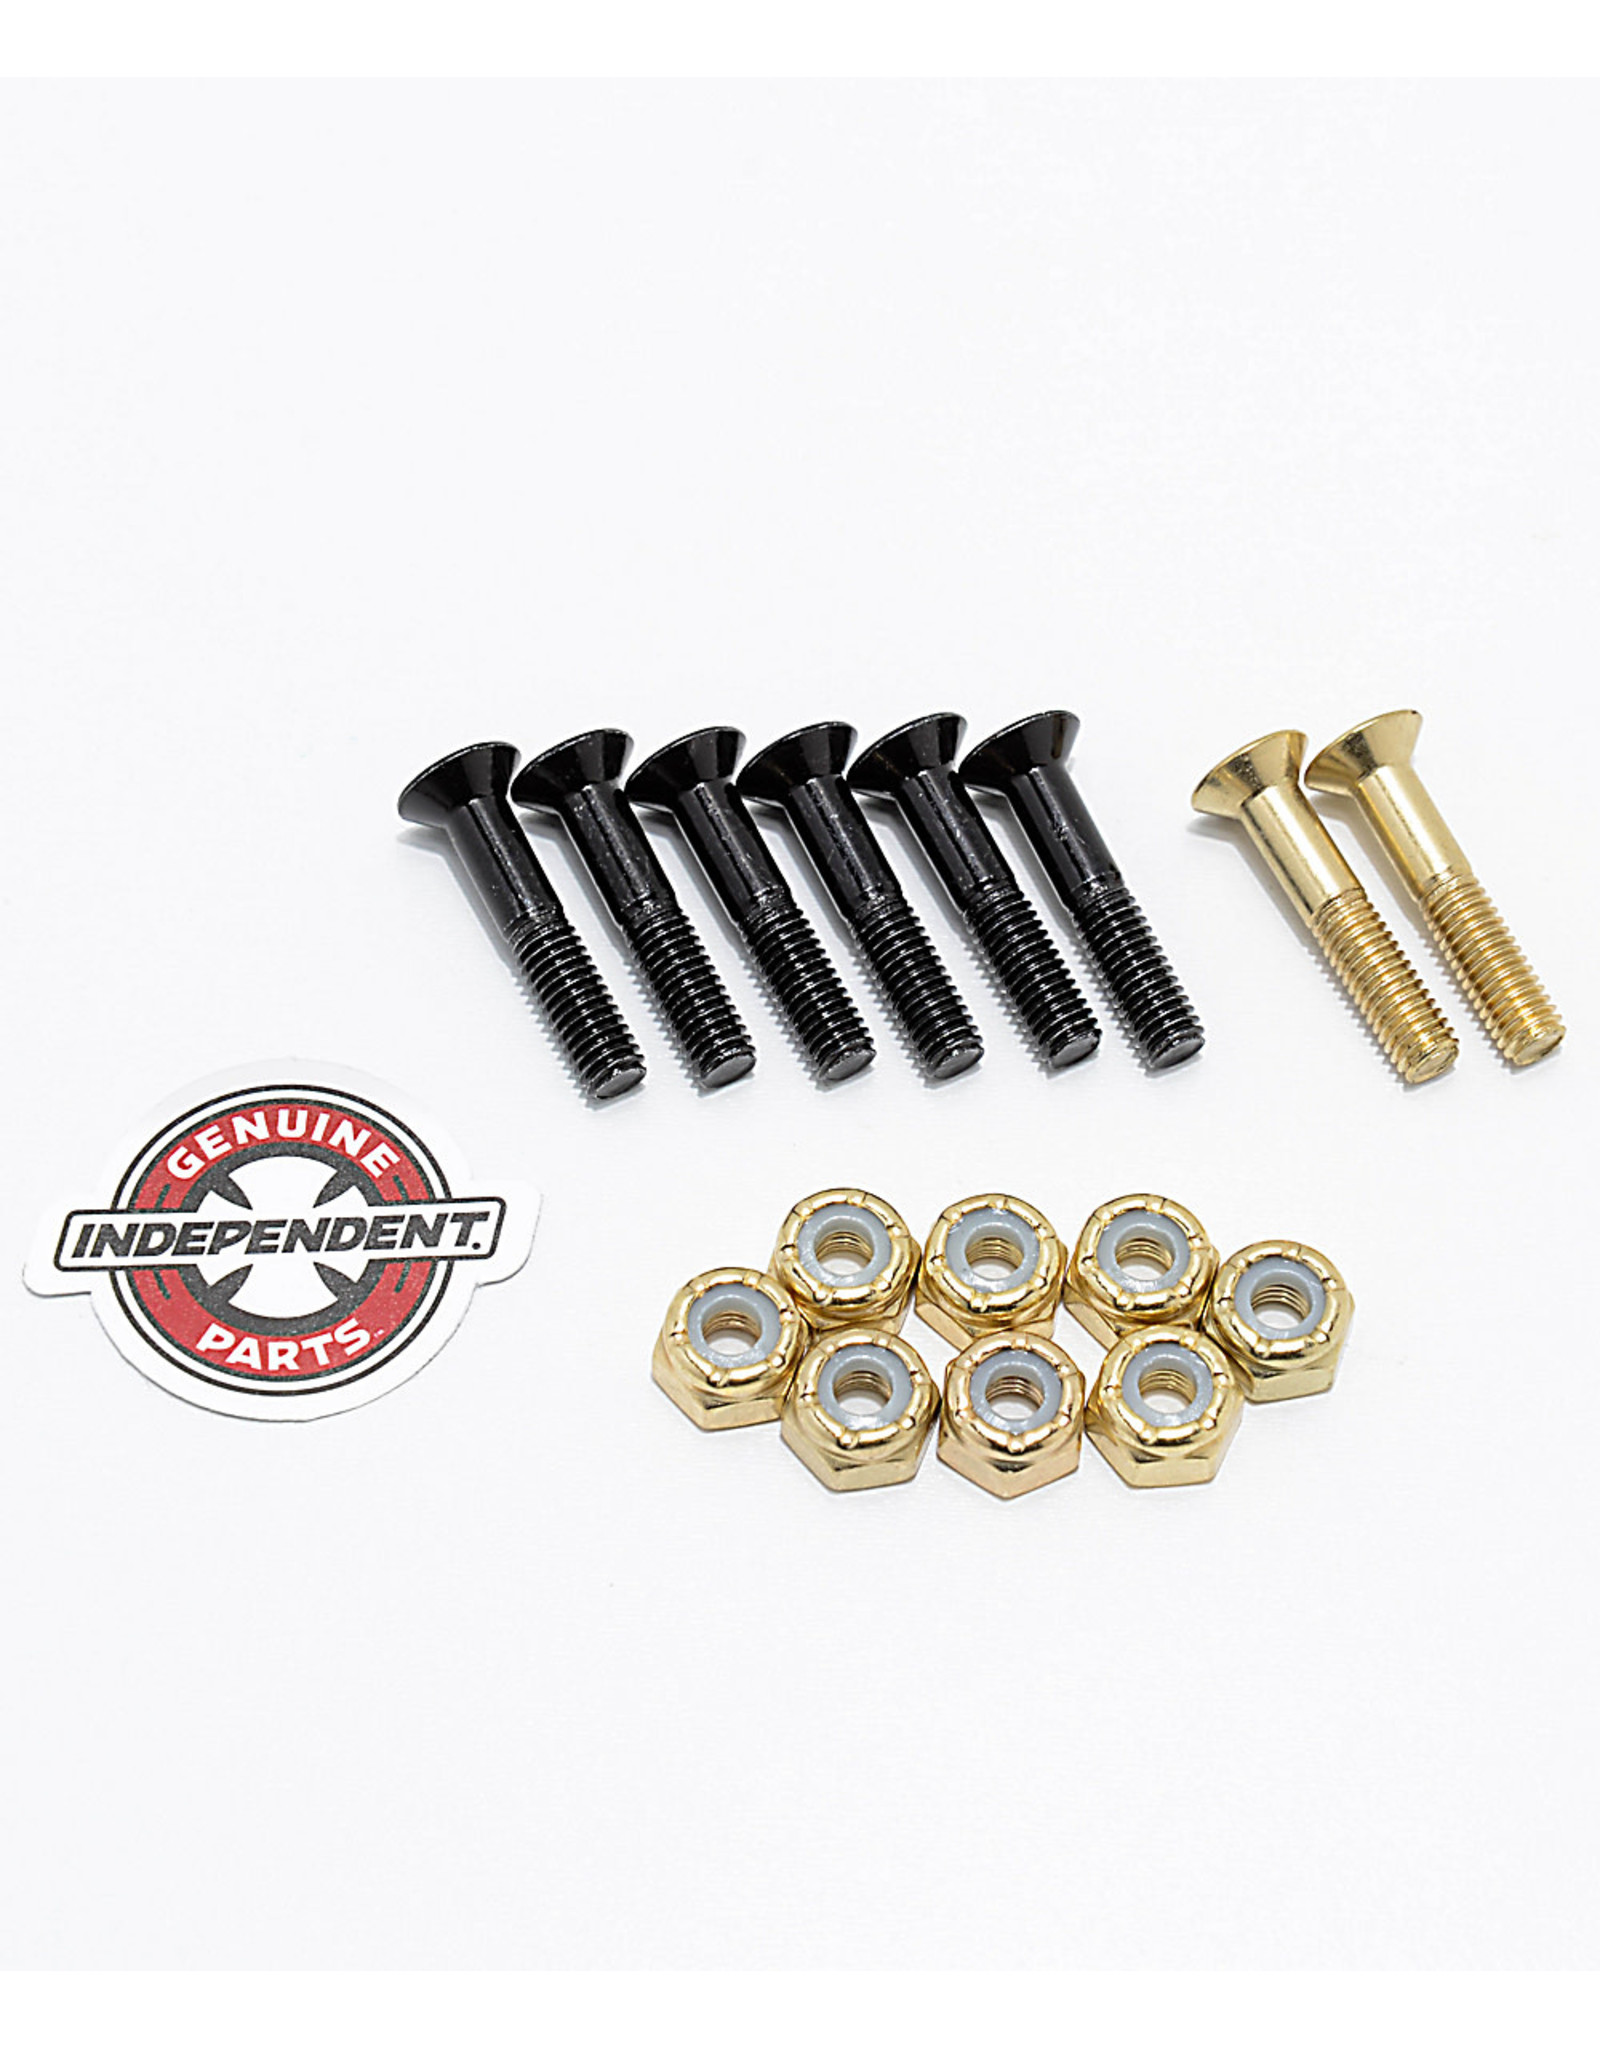 "INDY INDEPENDENT 1"" CROSS BOLTS HARDWARE PHILLIPS 2 GOLD SCREWS"